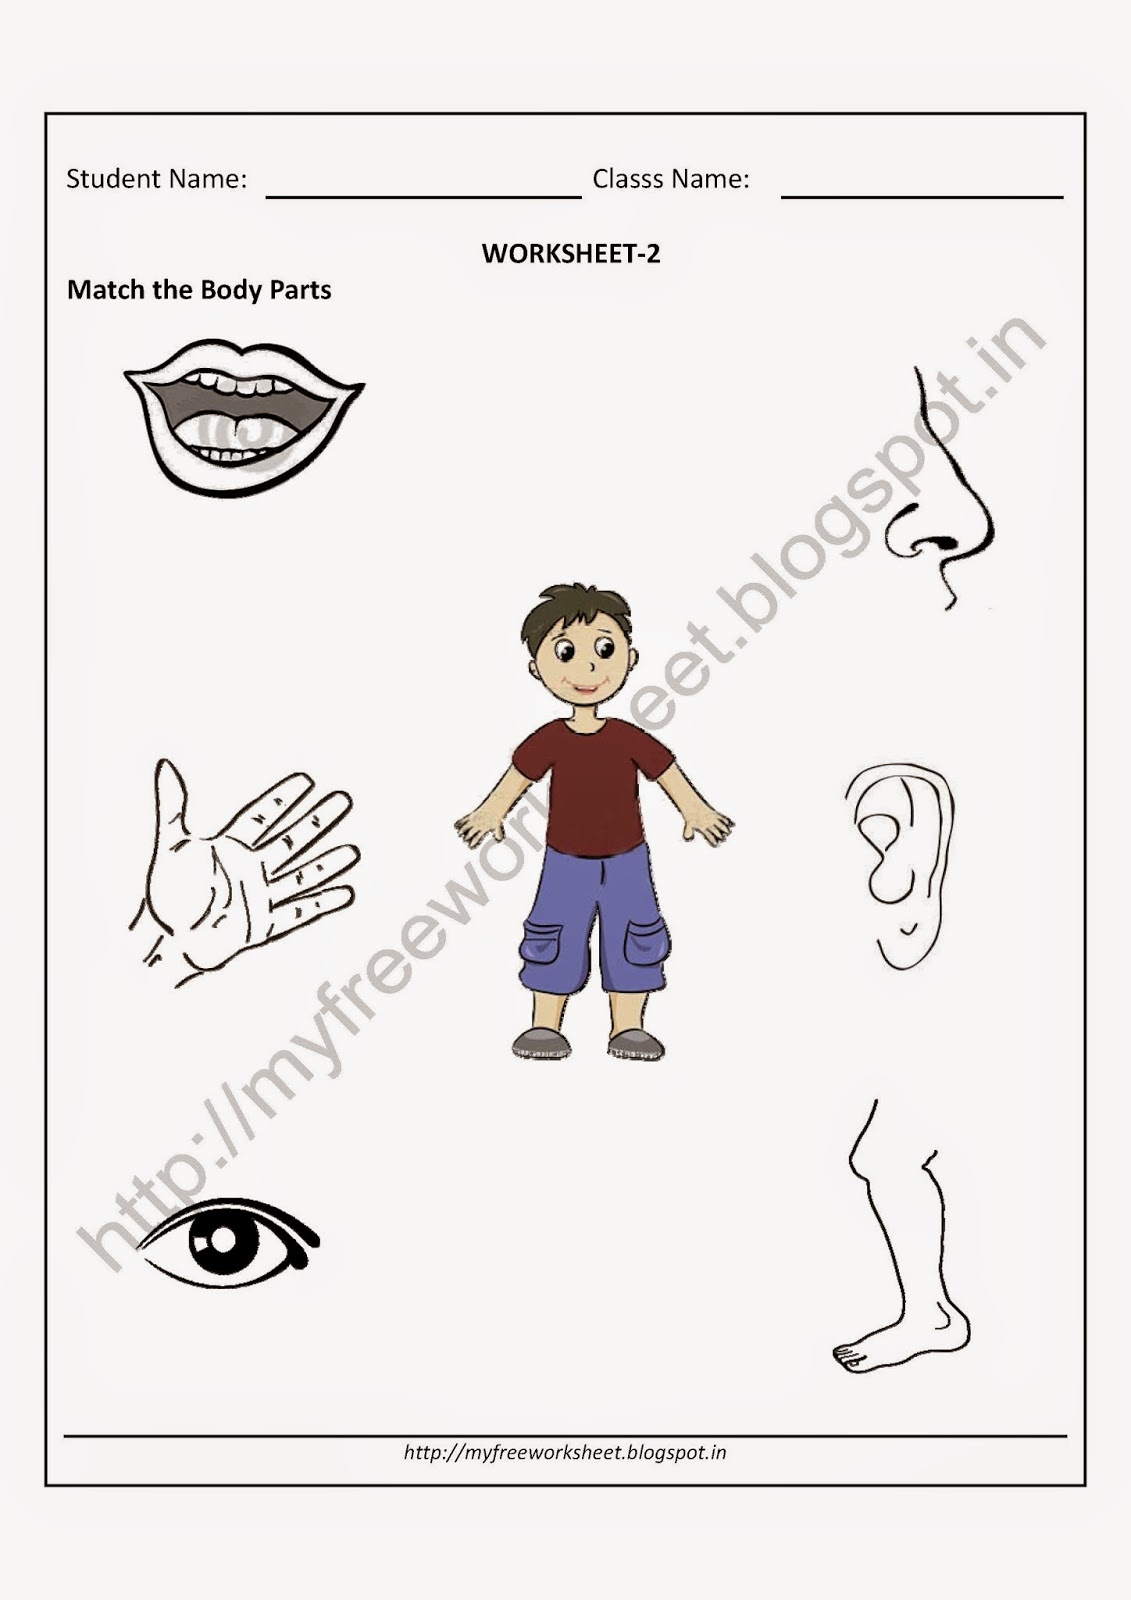 Download Pdf Free For Nursery Kids Match The Body Parts Worksheet 2